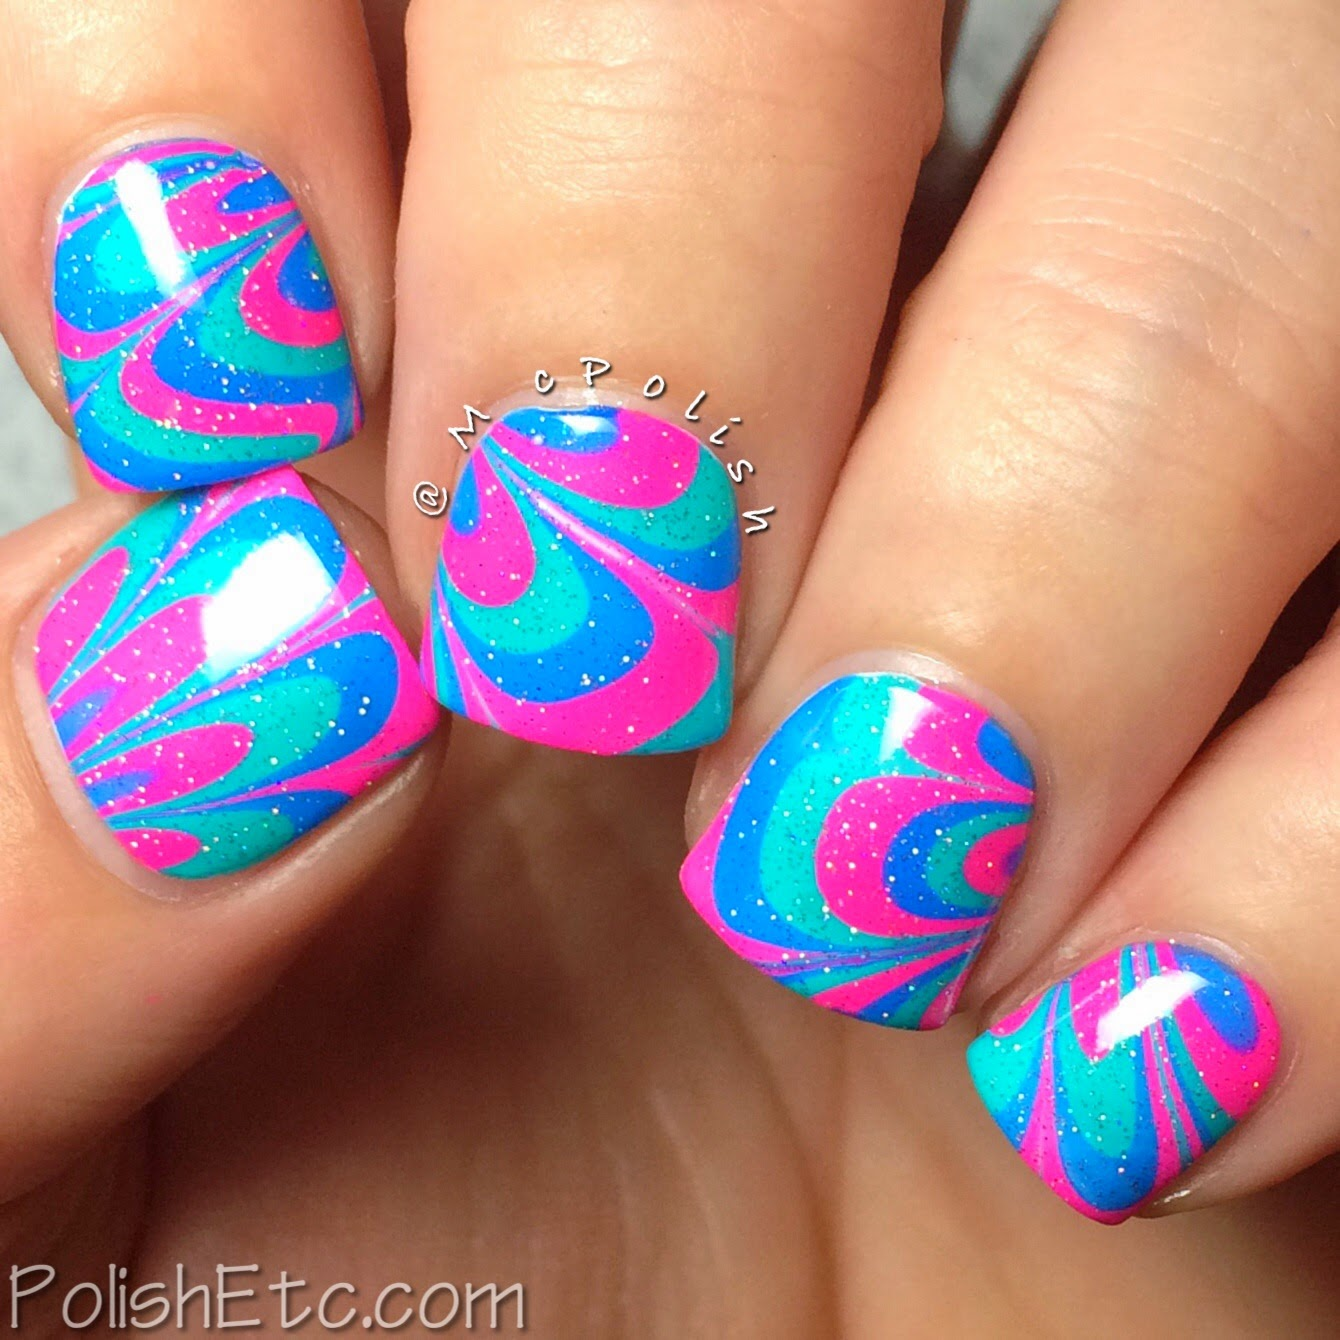 31 Day Nail Art Challenge - #31dc2014 - McPolish - WATER MARBLE